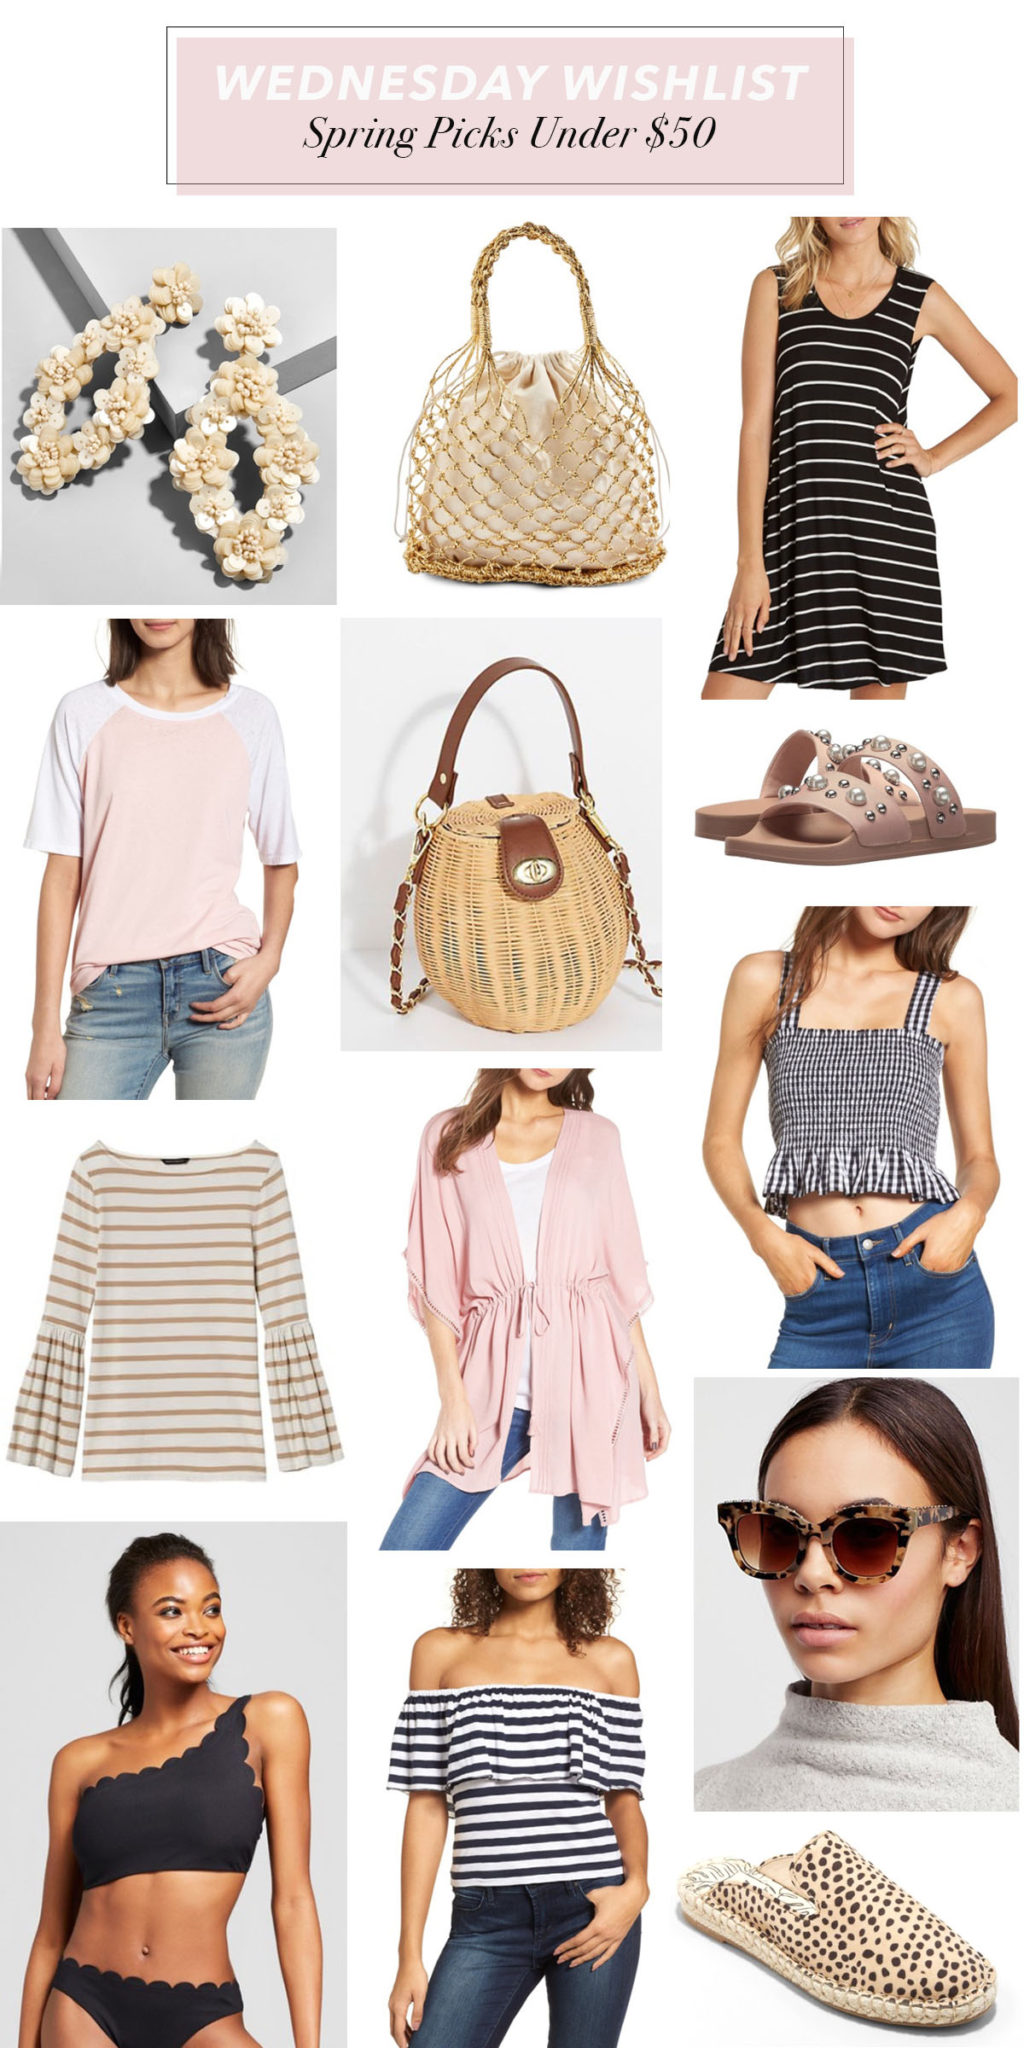 Spring Styles Under $50 | Budget-Friendly Spring Styles